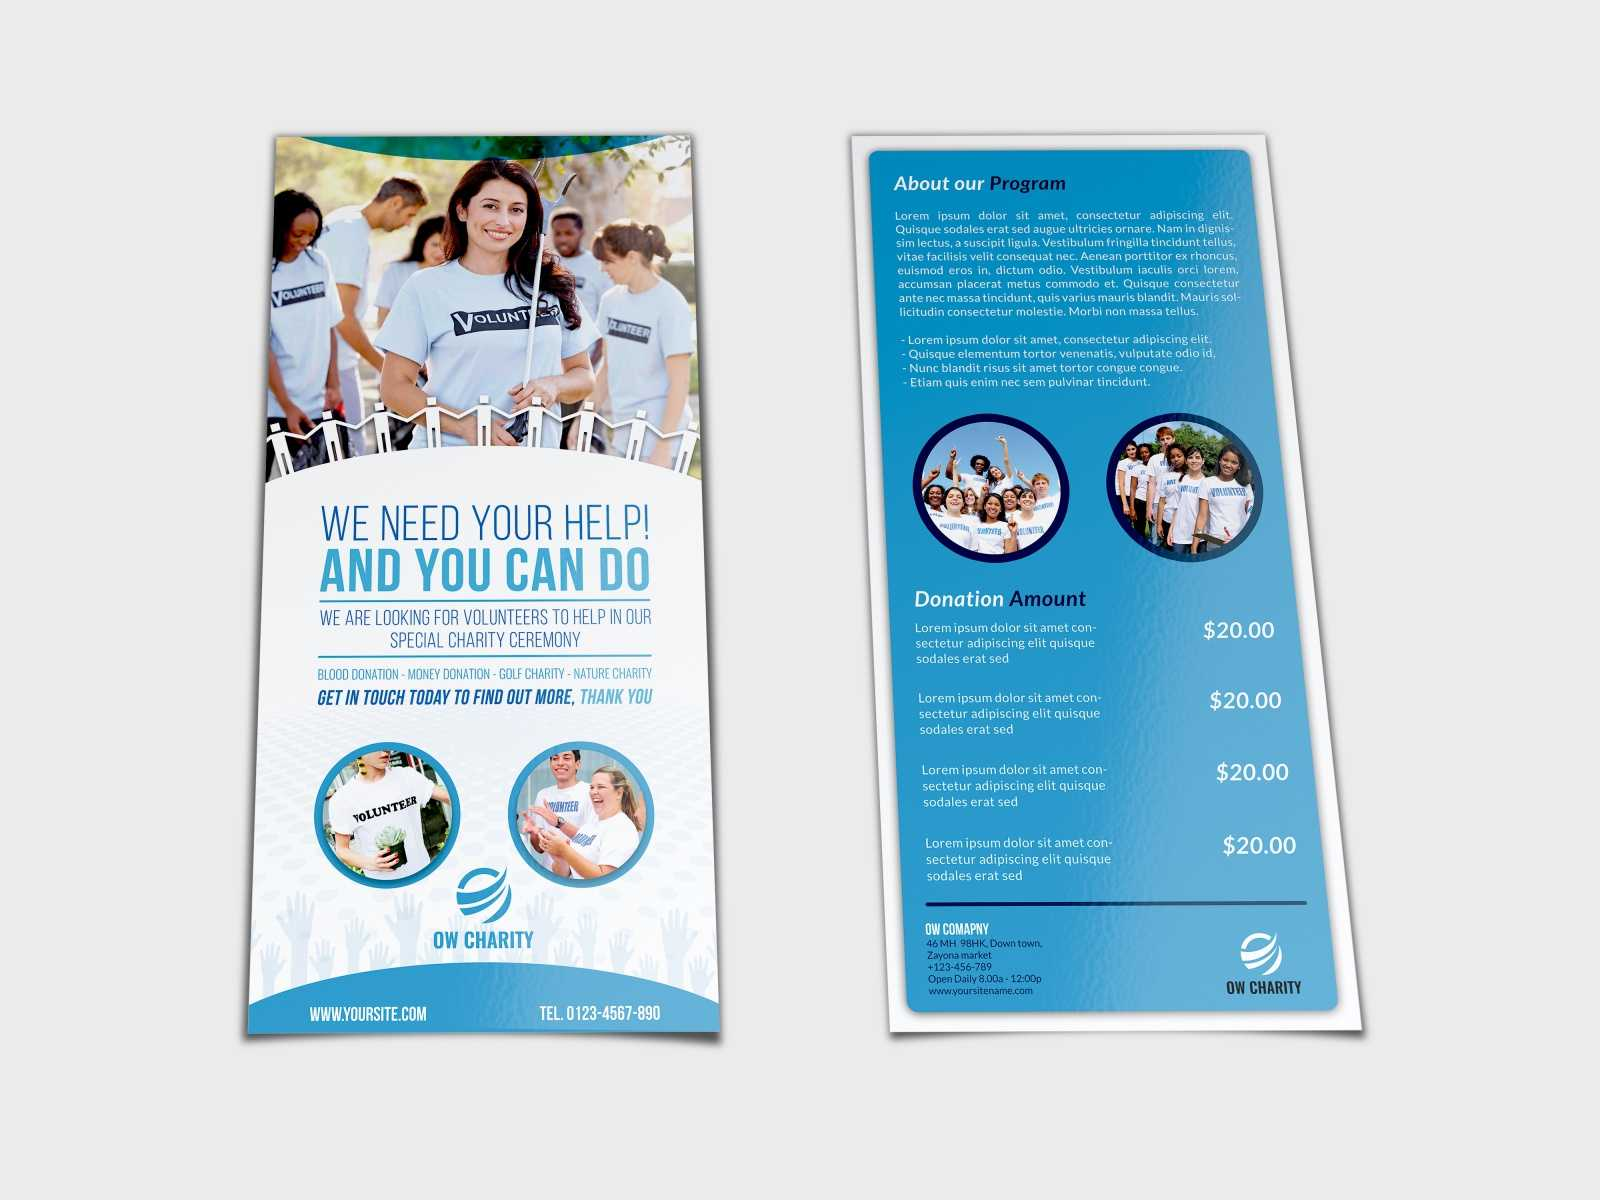 Volunteer Flyer Template Dl Sizeowpictures On Dribbble Within Dl Size Flyer Template